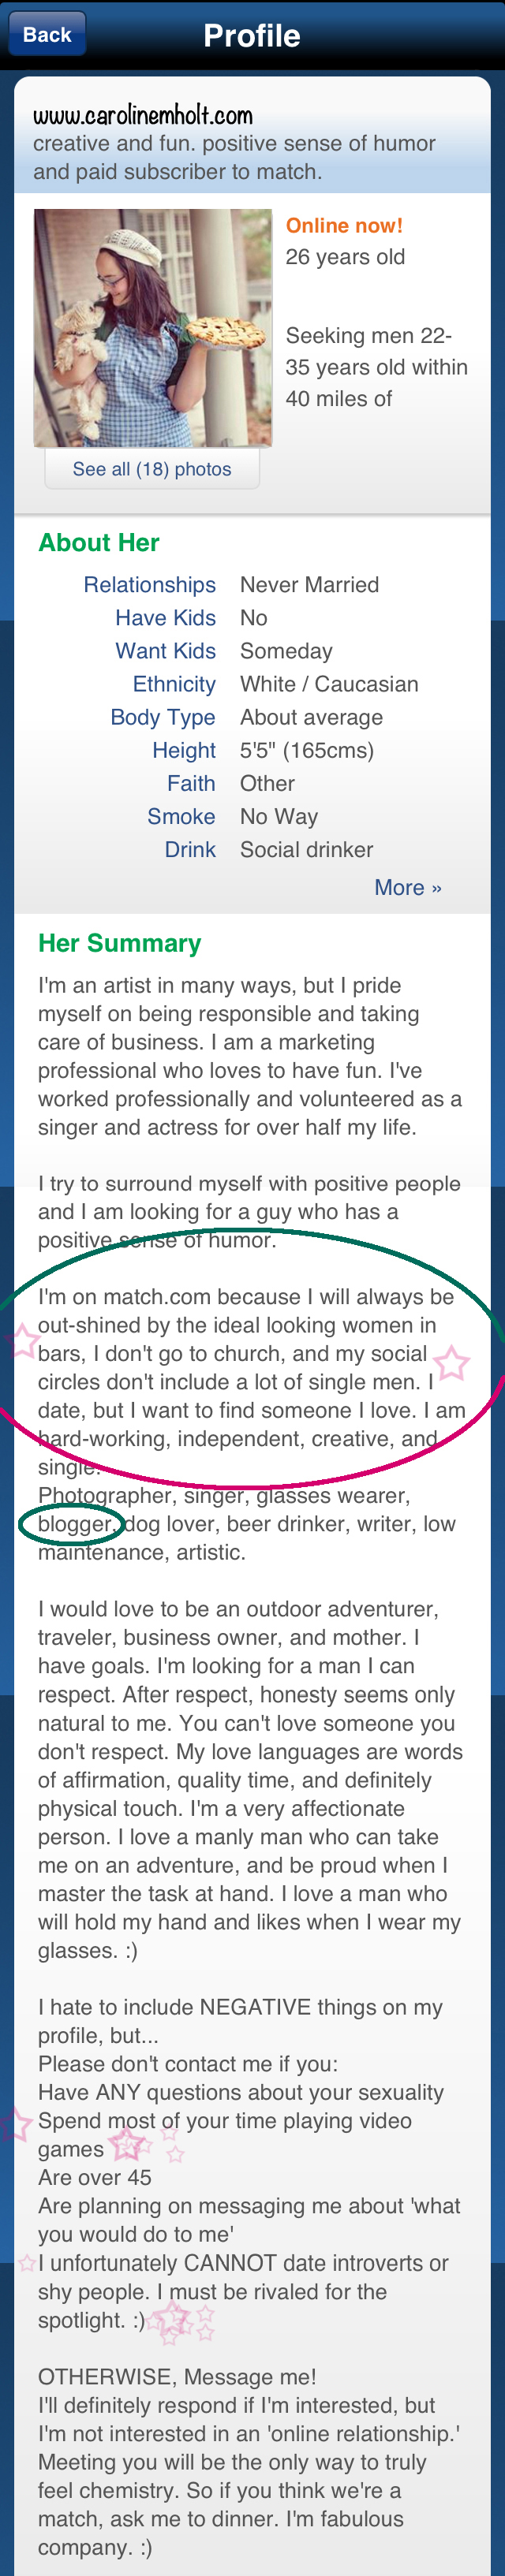 Deleted all of my online dating profiles for good. dating